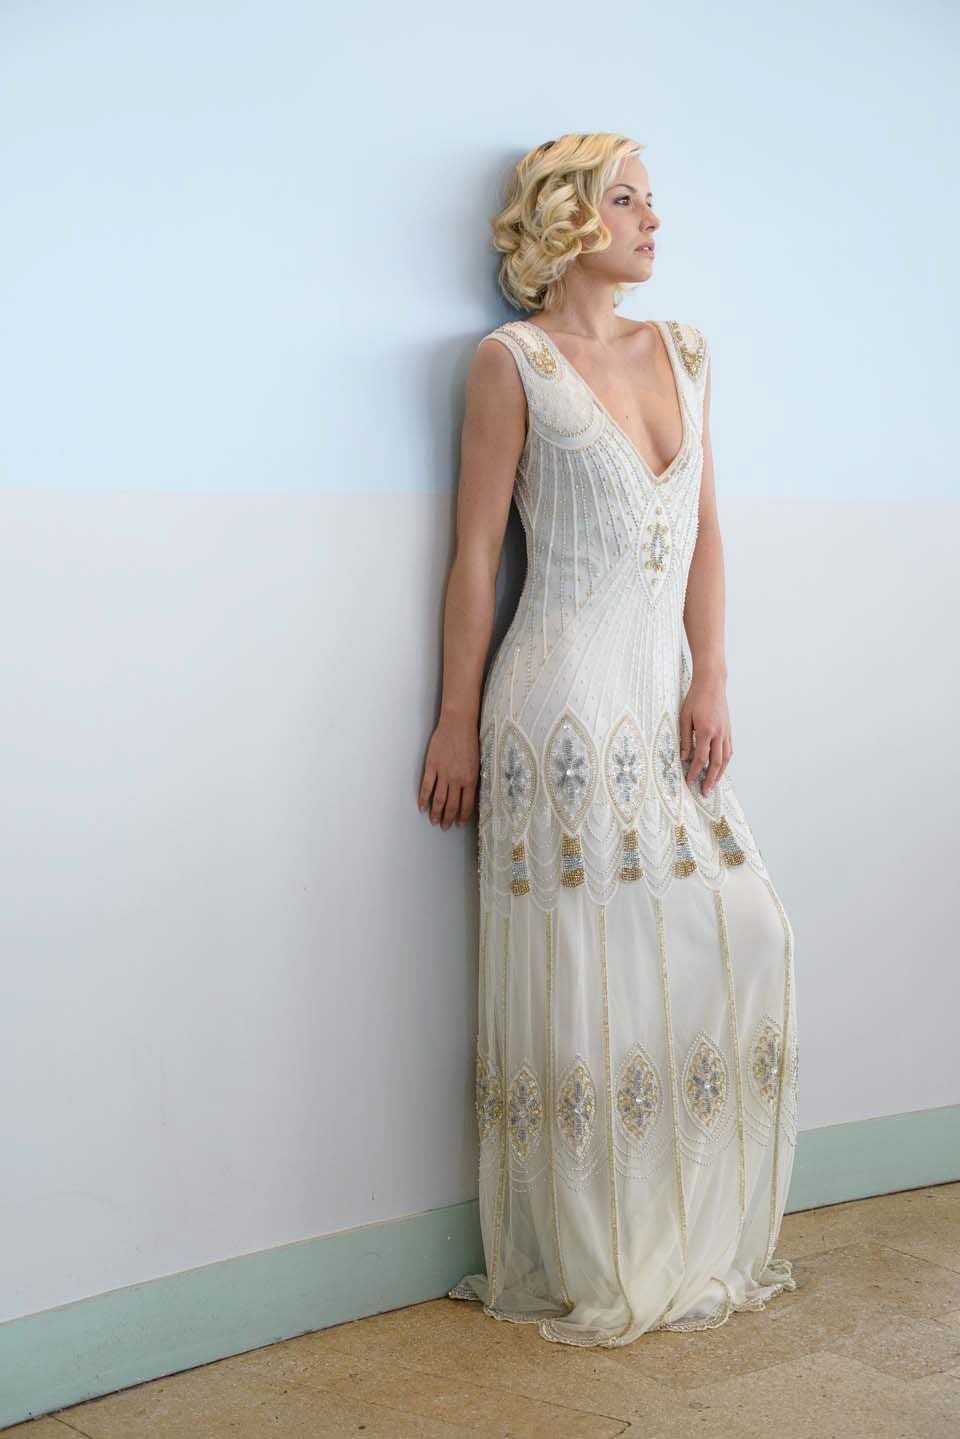 Vicky rowe a debut collection of 1920s and 1930s inspired vicky rowe dresses a debut collection of 1920s and 1930s inspired heirloom style wedding dresses ombrellifo Image collections